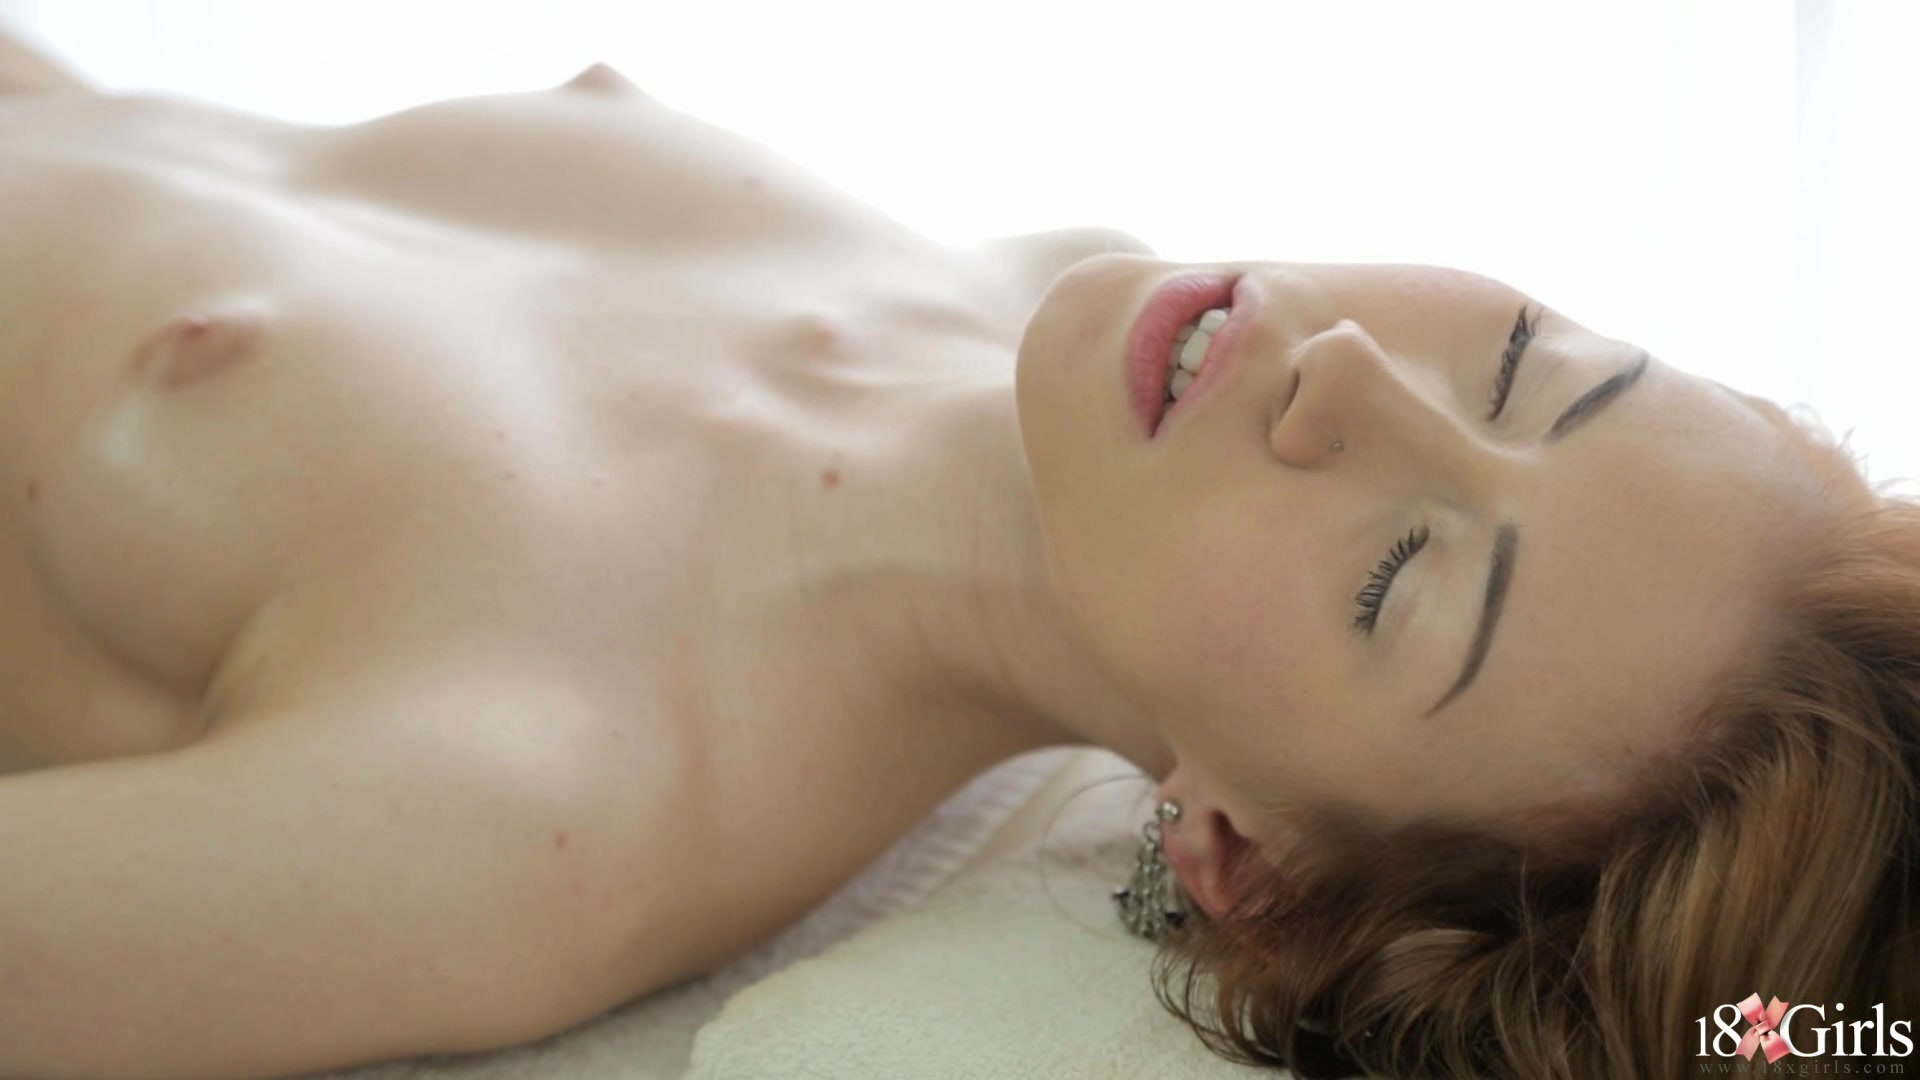 This is why she like massage so much. MUST SEE!